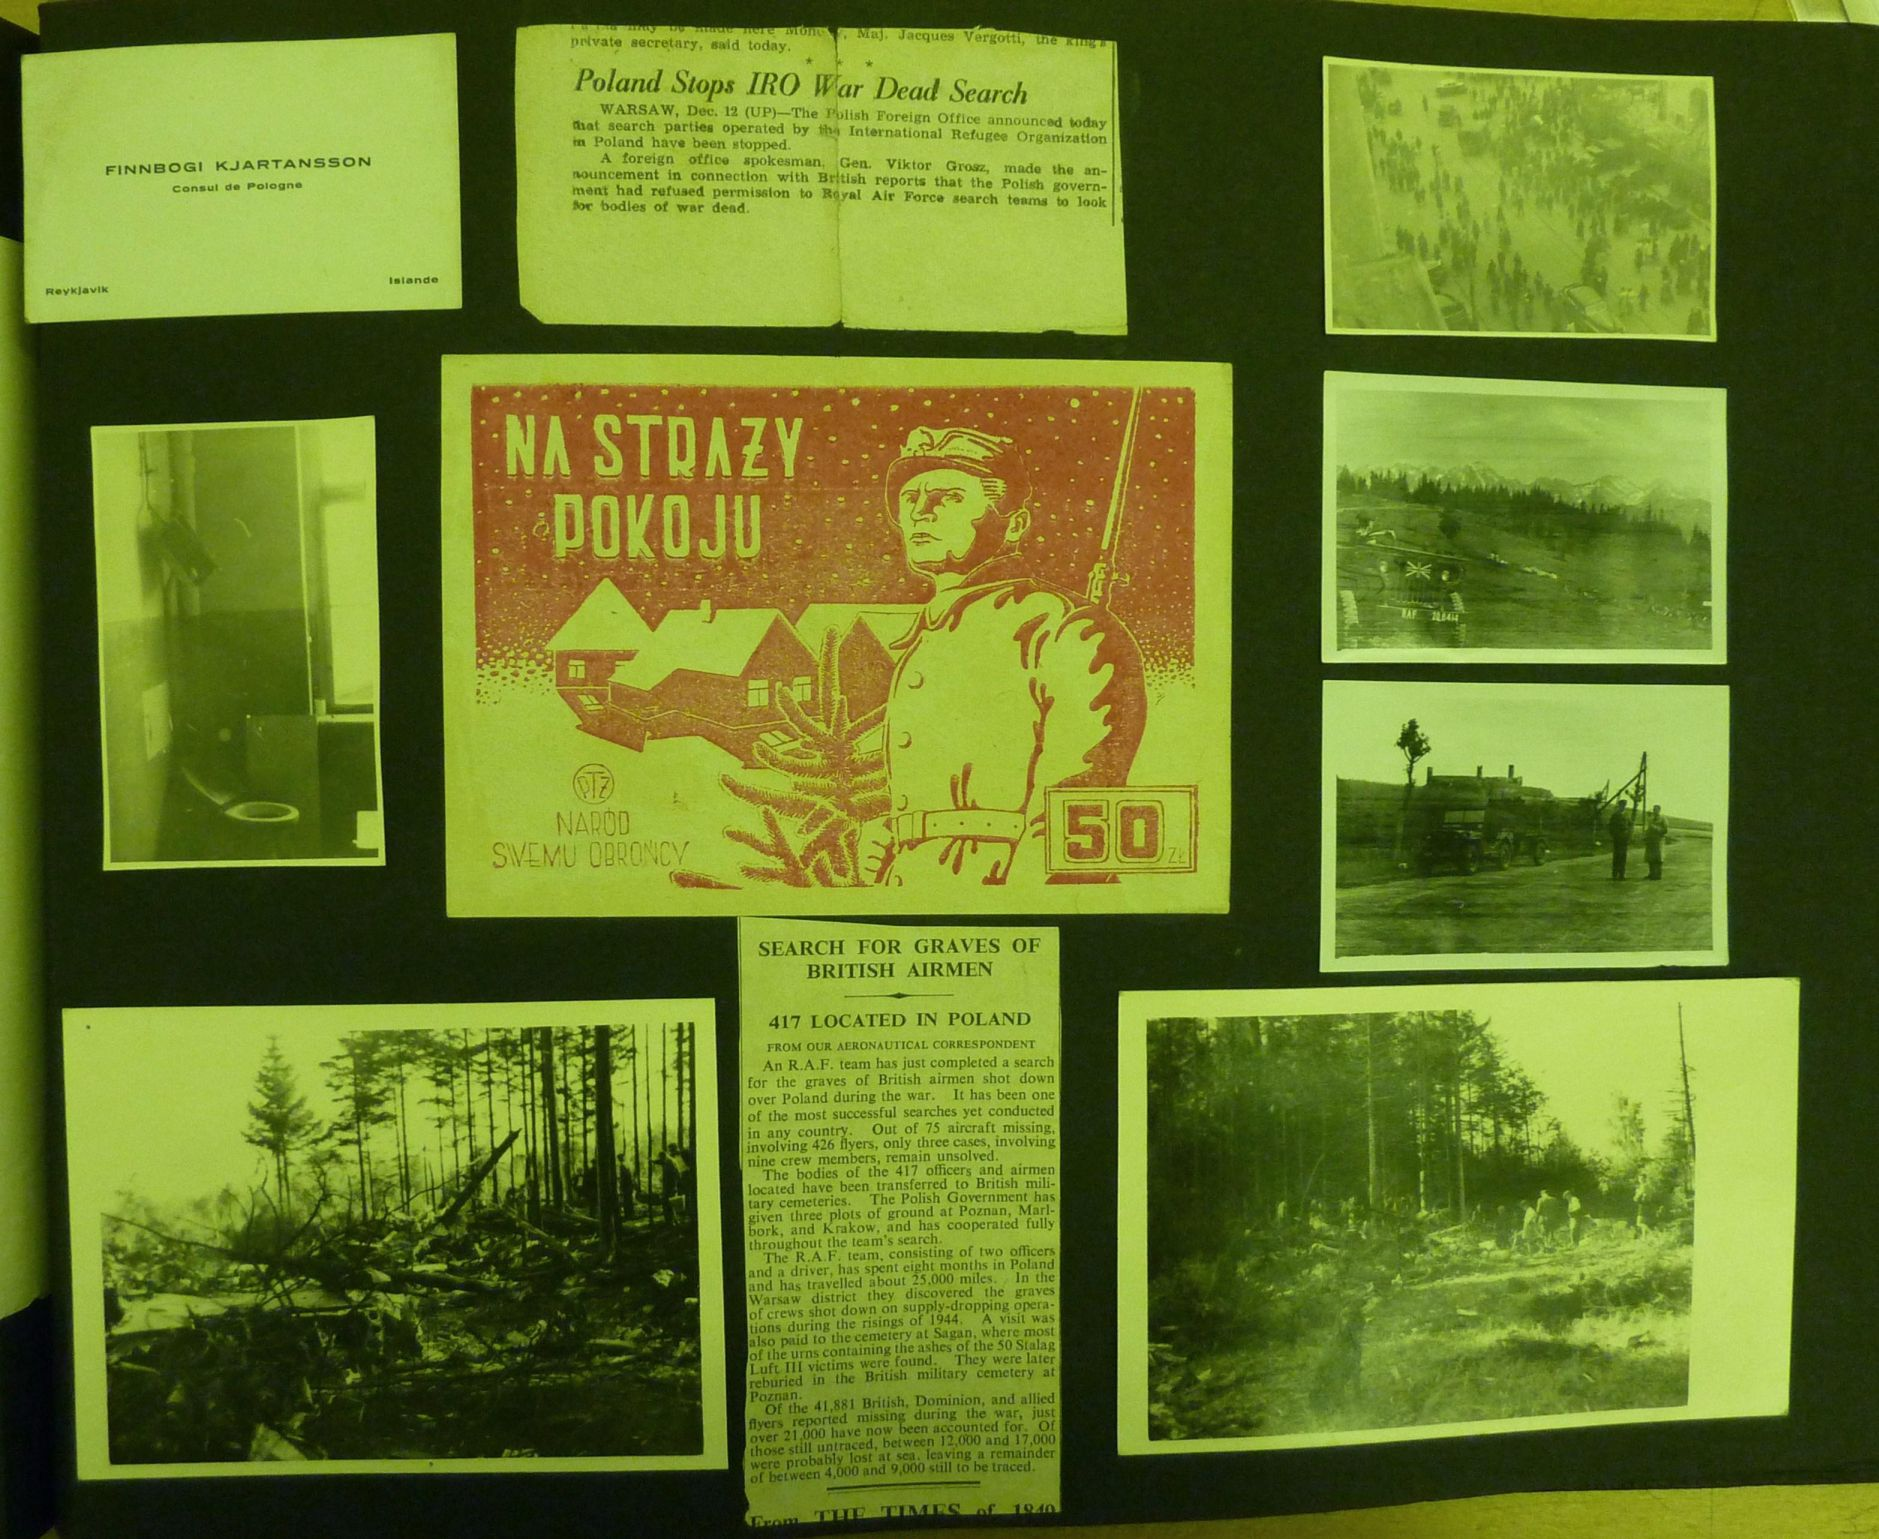 IMAGE 4: Montage of Photos from S/L Eric Rideal's  PHOTO Alblum now residing in the RAF Museum in London